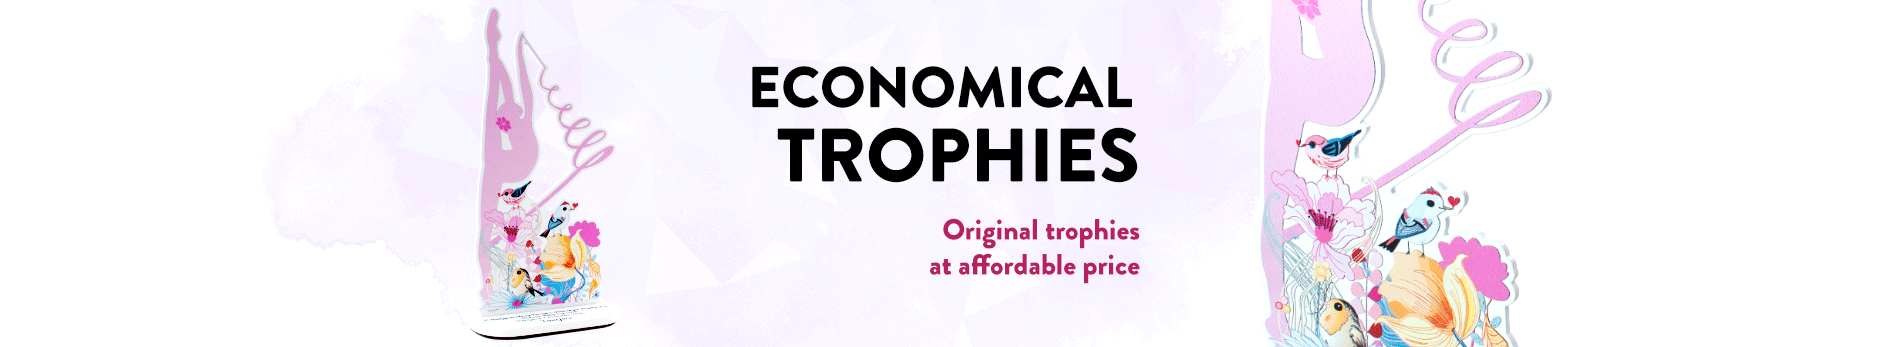 Original trophies at affordable price Modern Forms